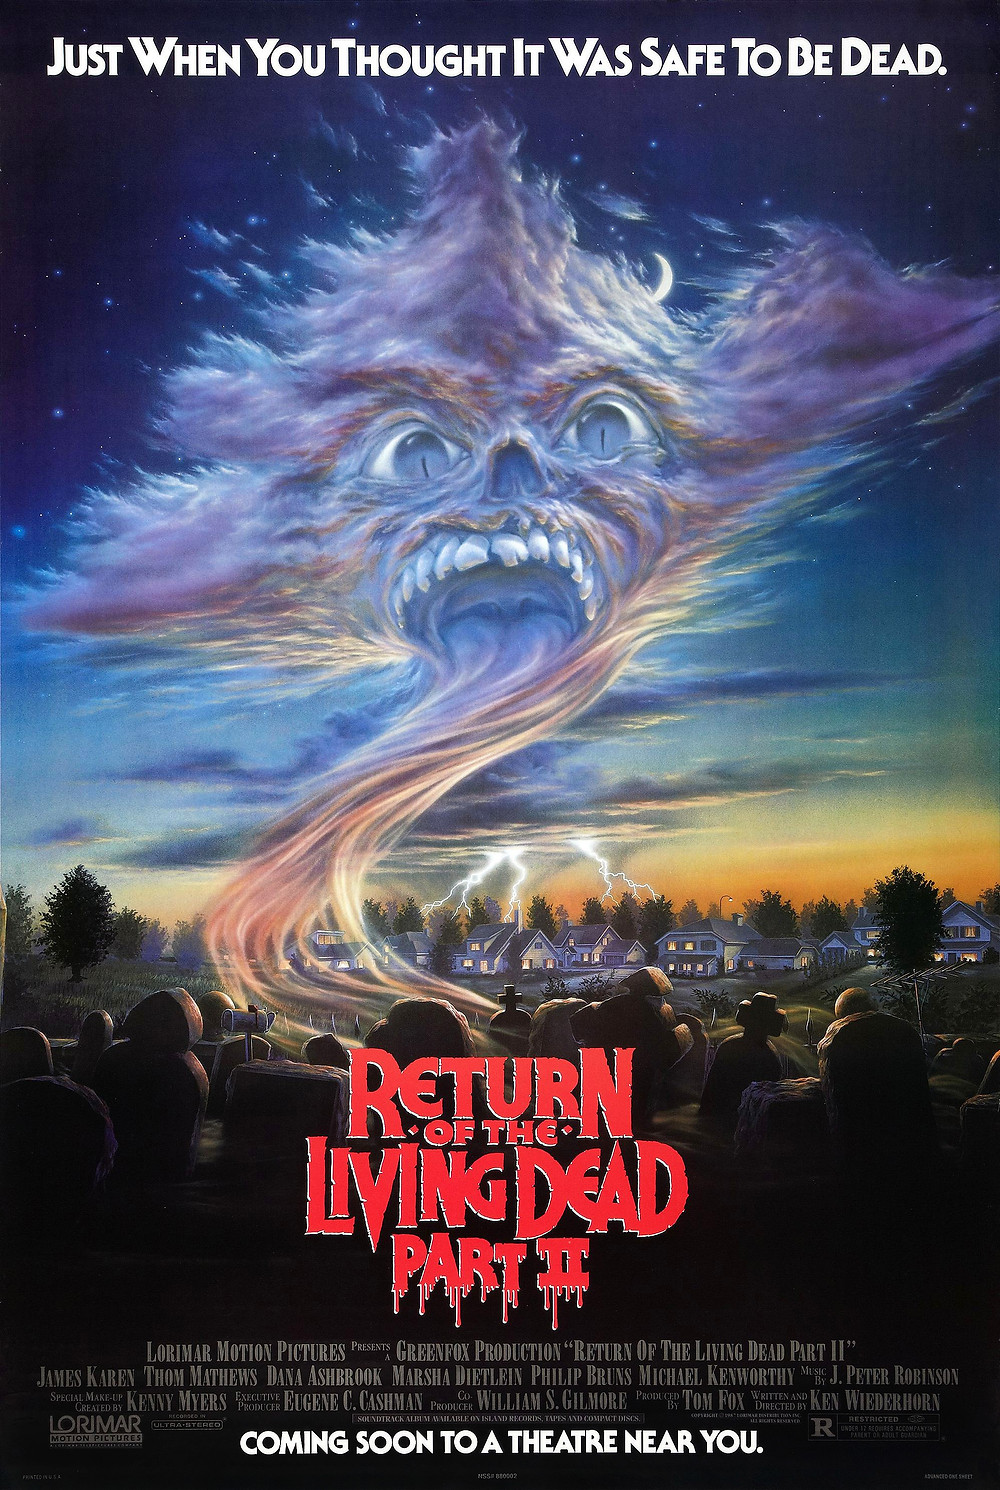 Original theatrical poster for Return of the Living Dead Part II.